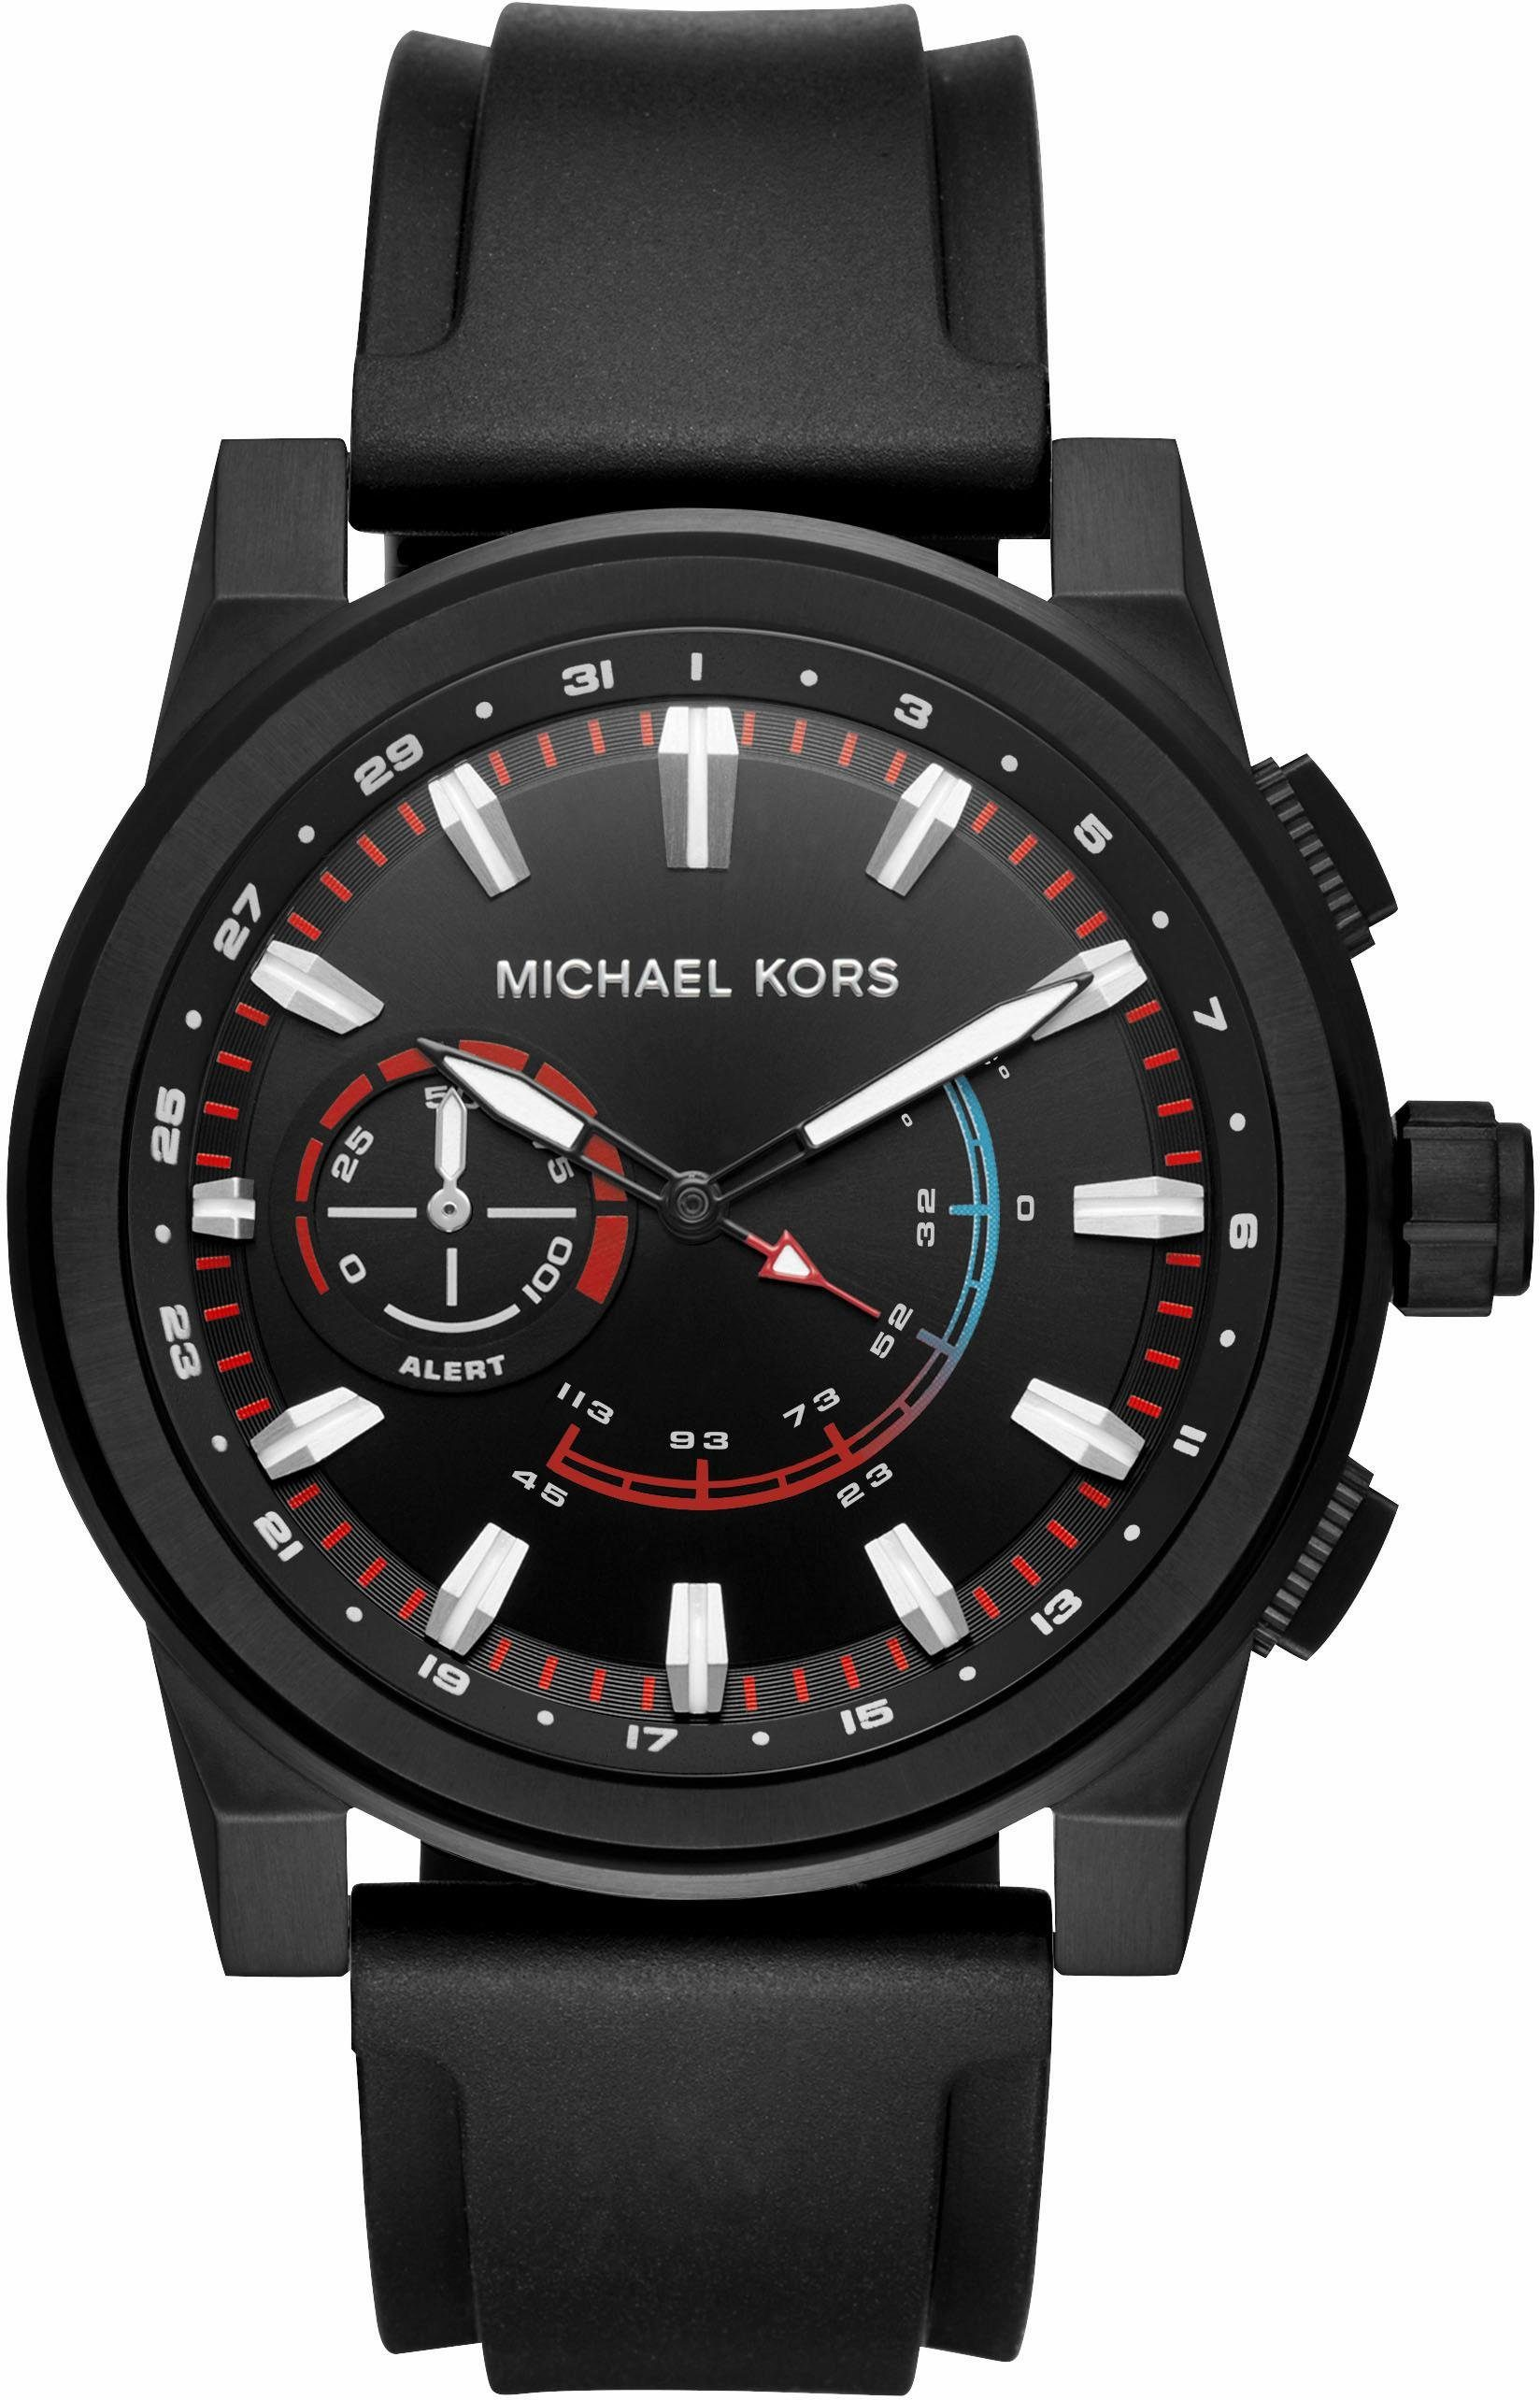 MICHAEL KORS ACCESS GRAYSON, MKT4010 Smartwatch (Android Wear)